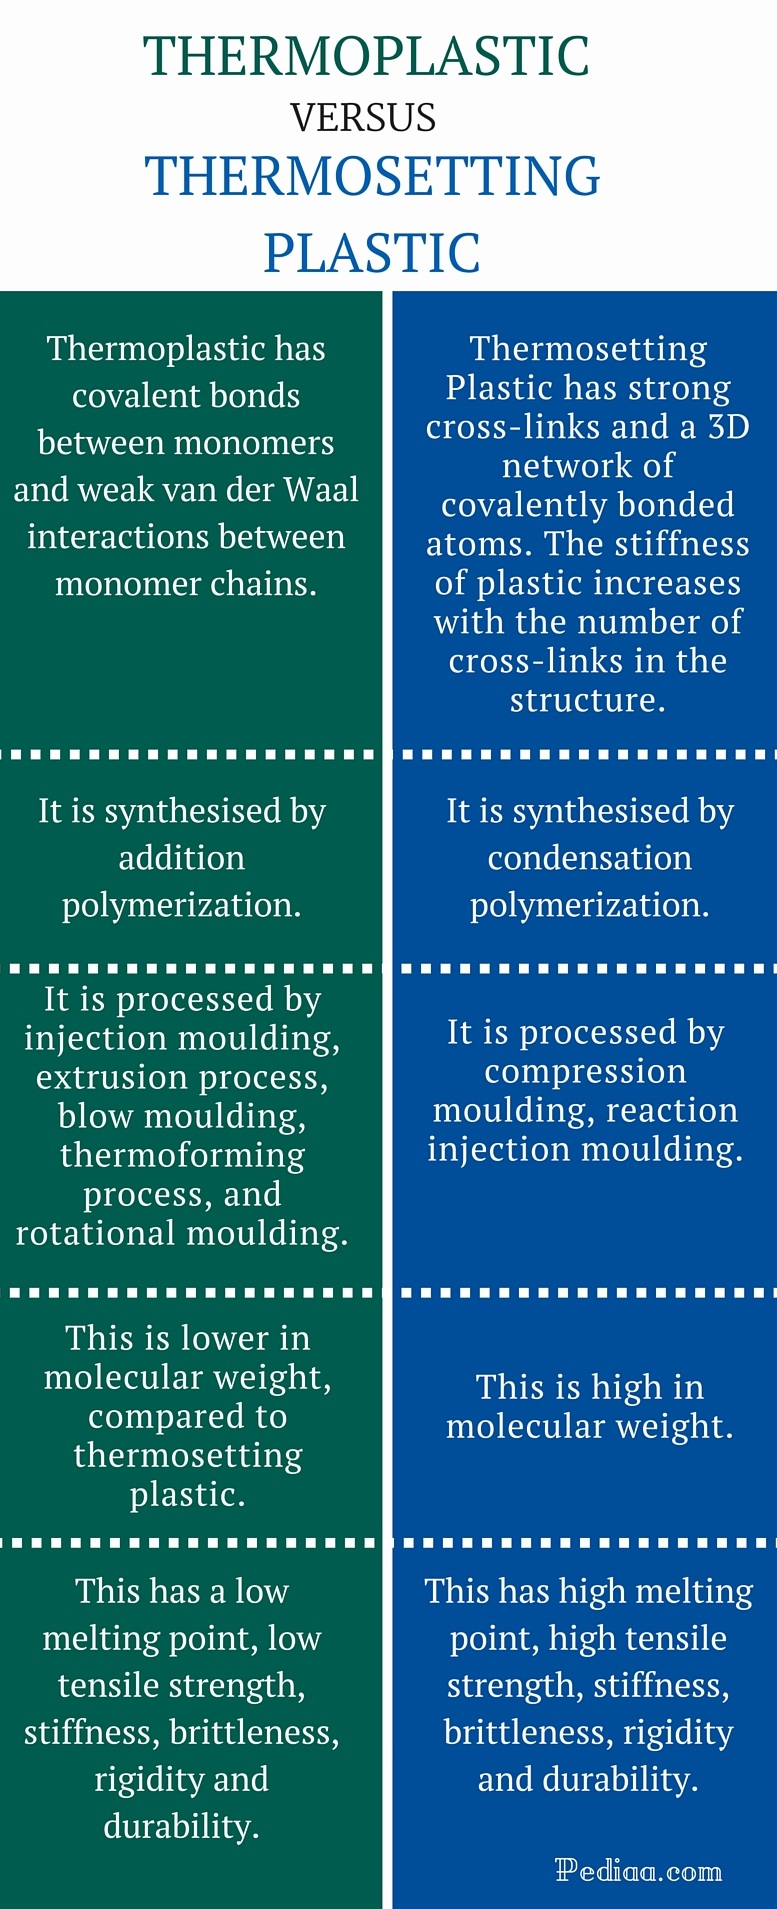 Difference Between Thermoplastic And Thermosetting Plastic